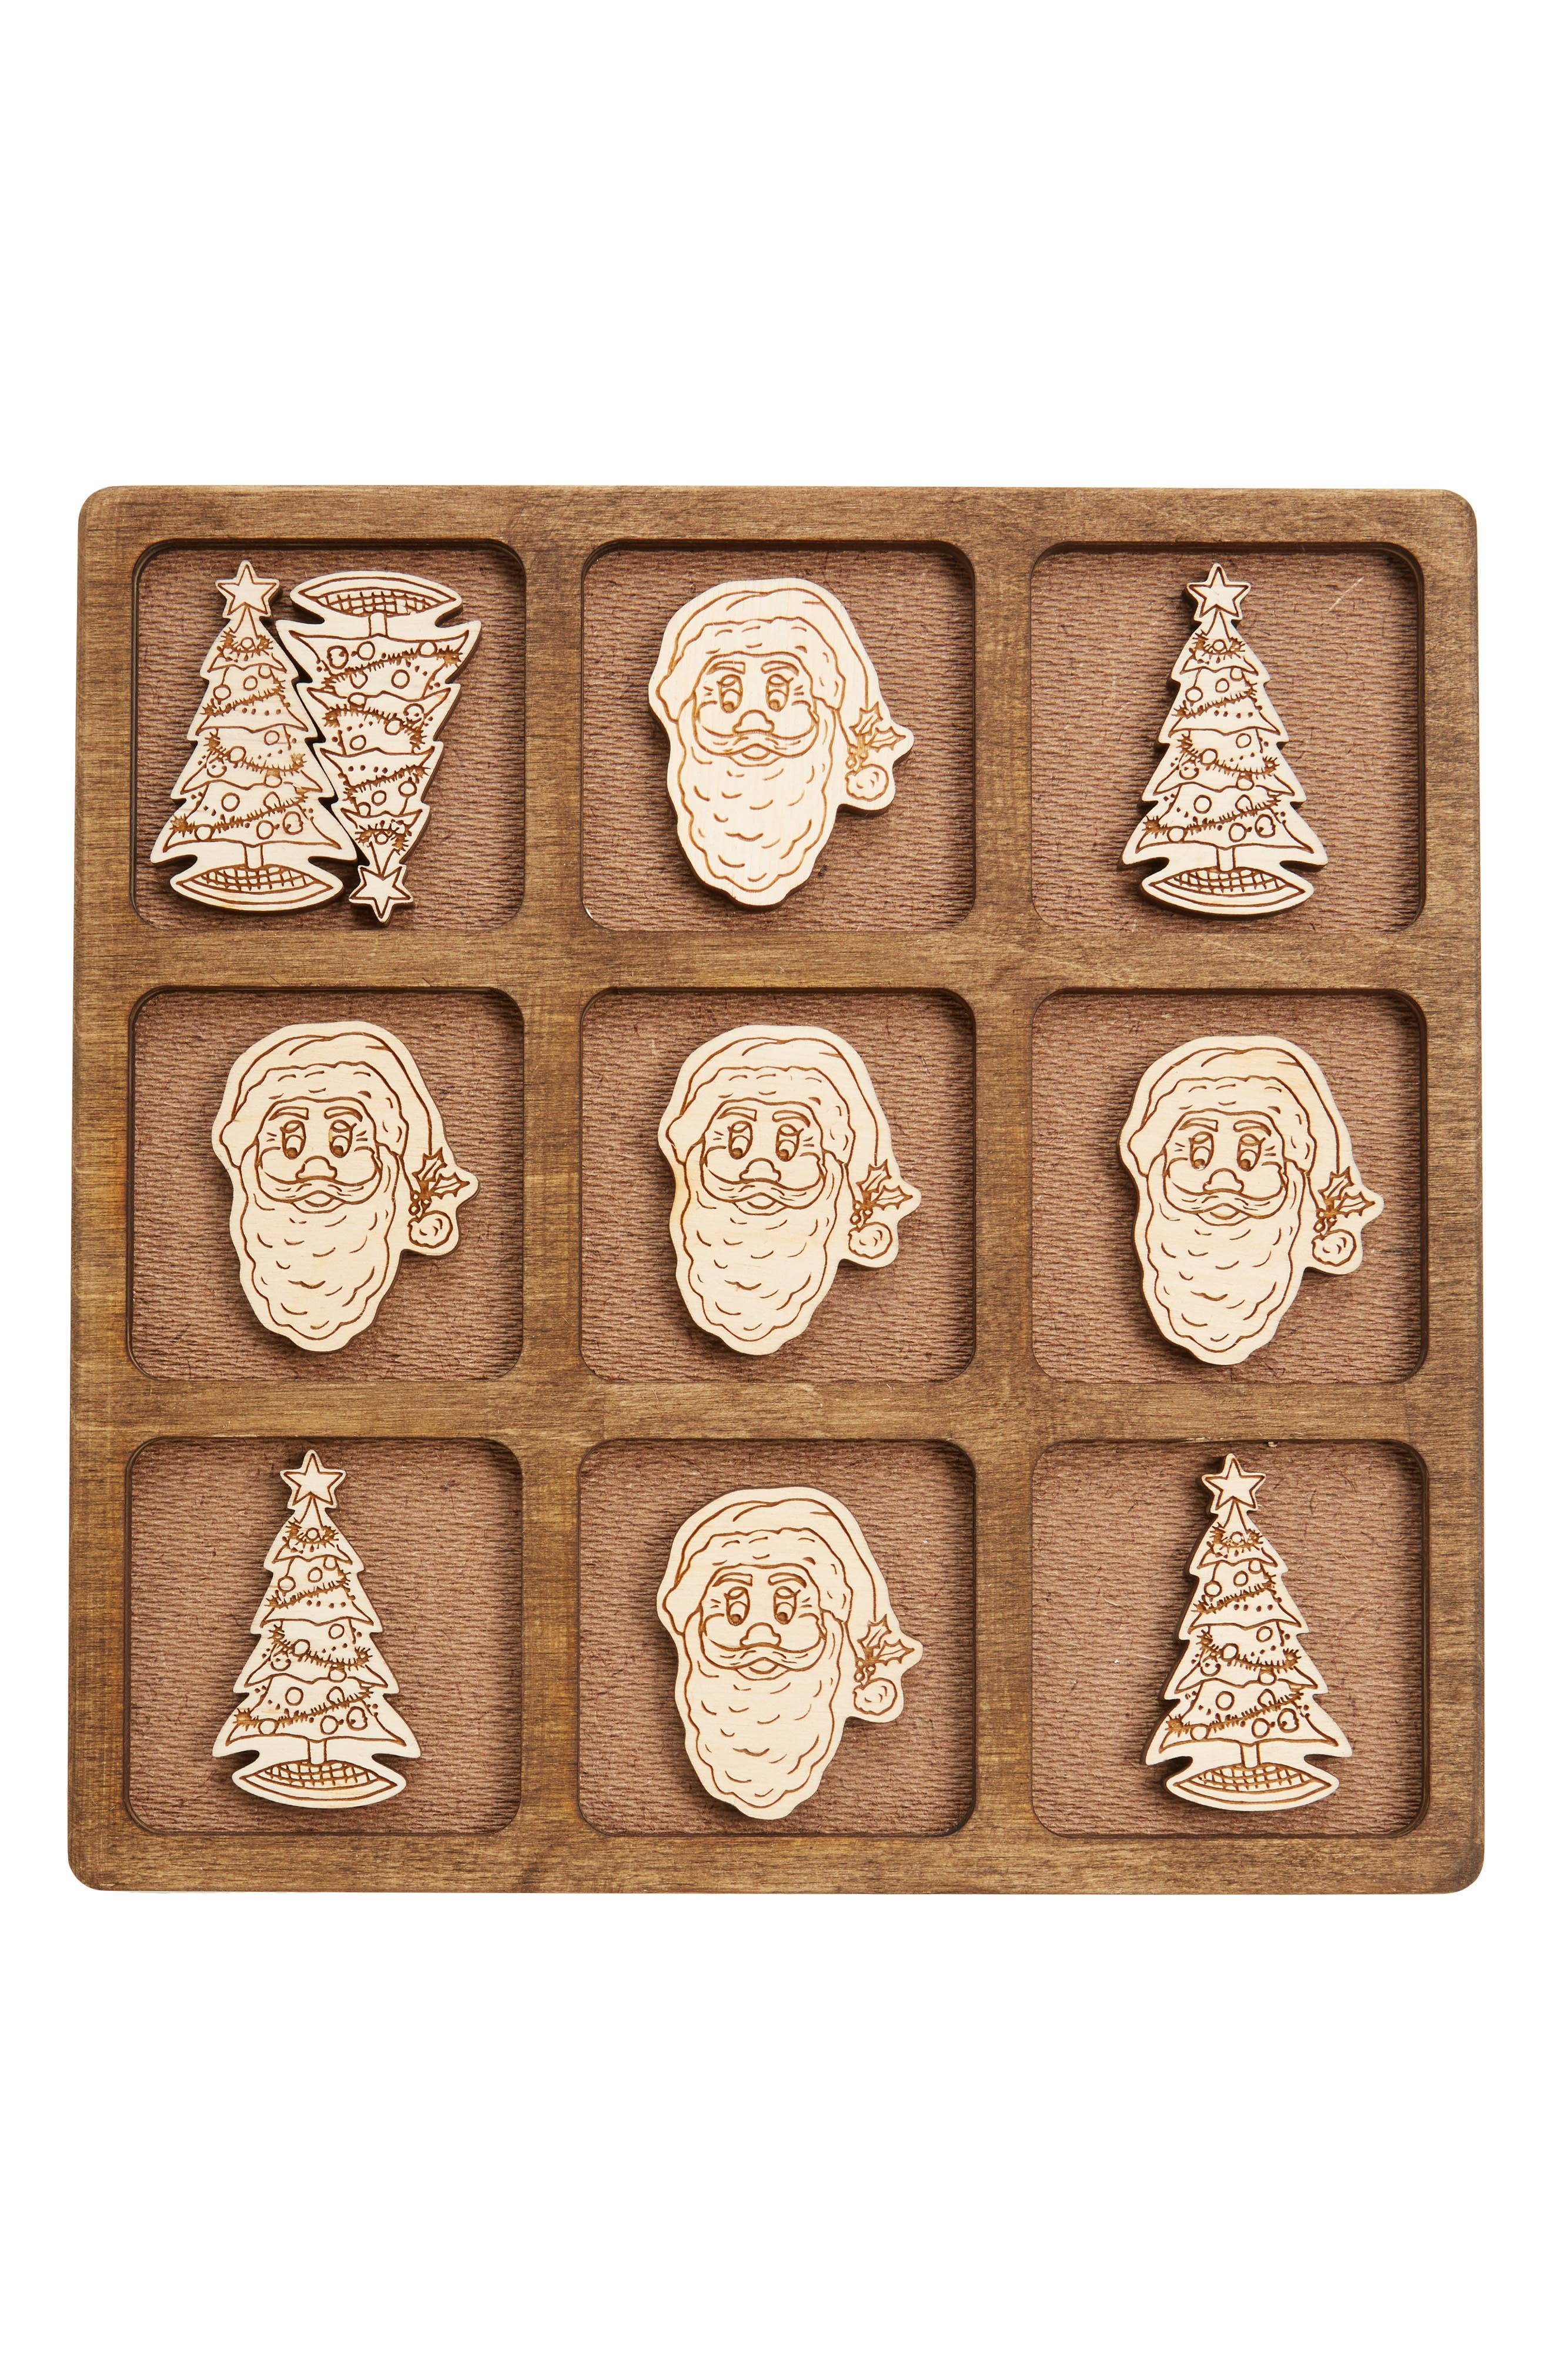 Toys 11-Piece Christmas Tic-Tac-Toe Game,                             Main thumbnail 1, color,                             Walnut